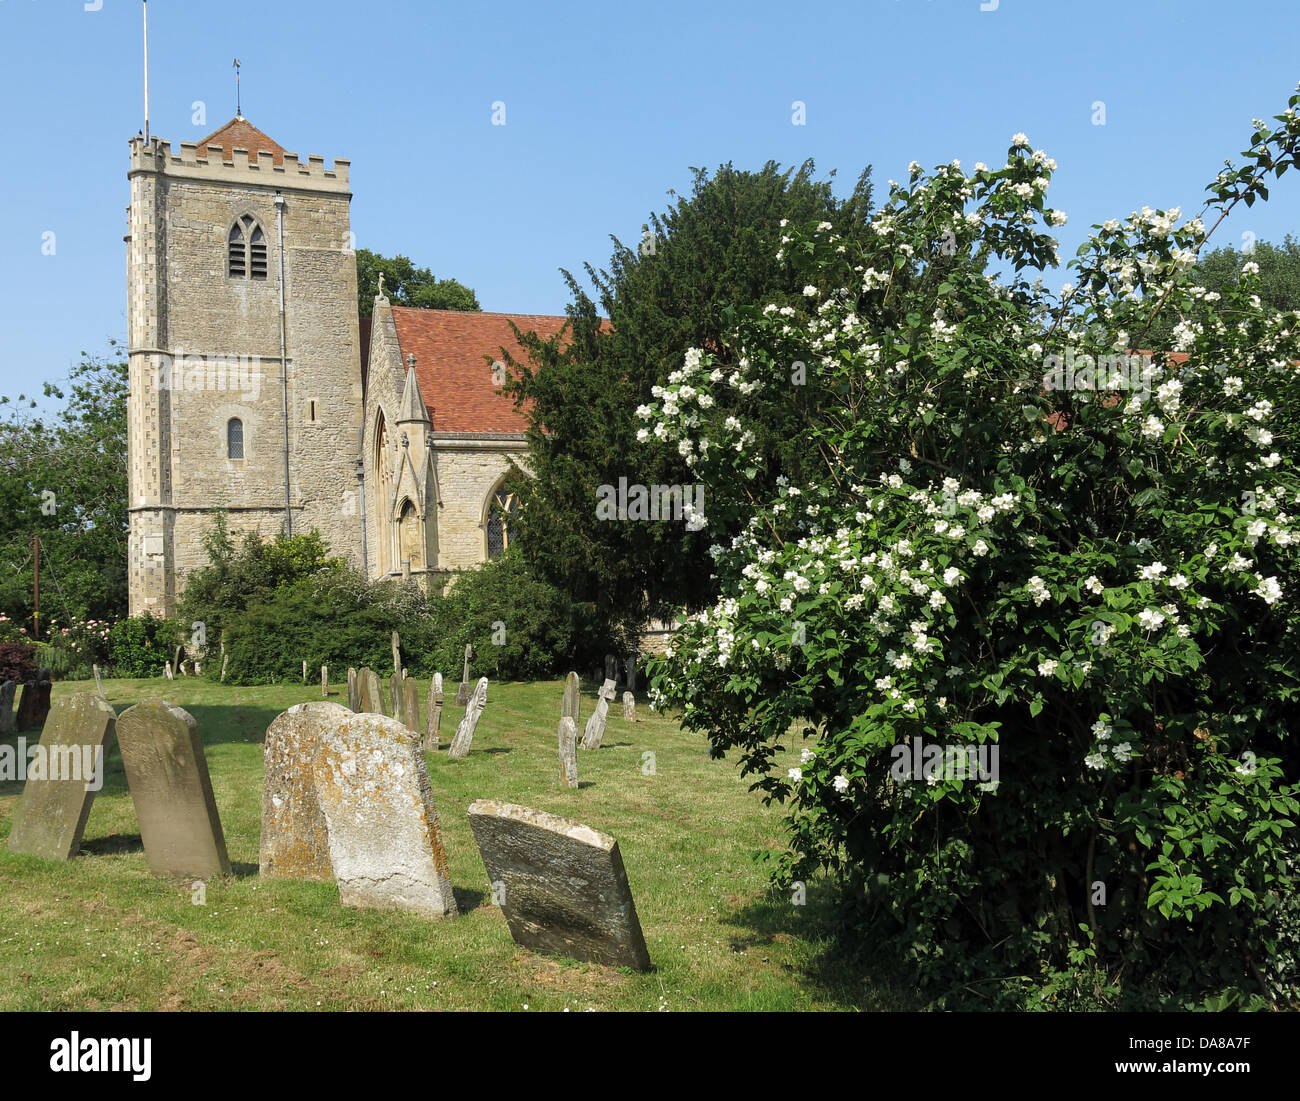 Beautiful Dorchester On Thames Abbey Church of St Peter & St Paul - Stock Image